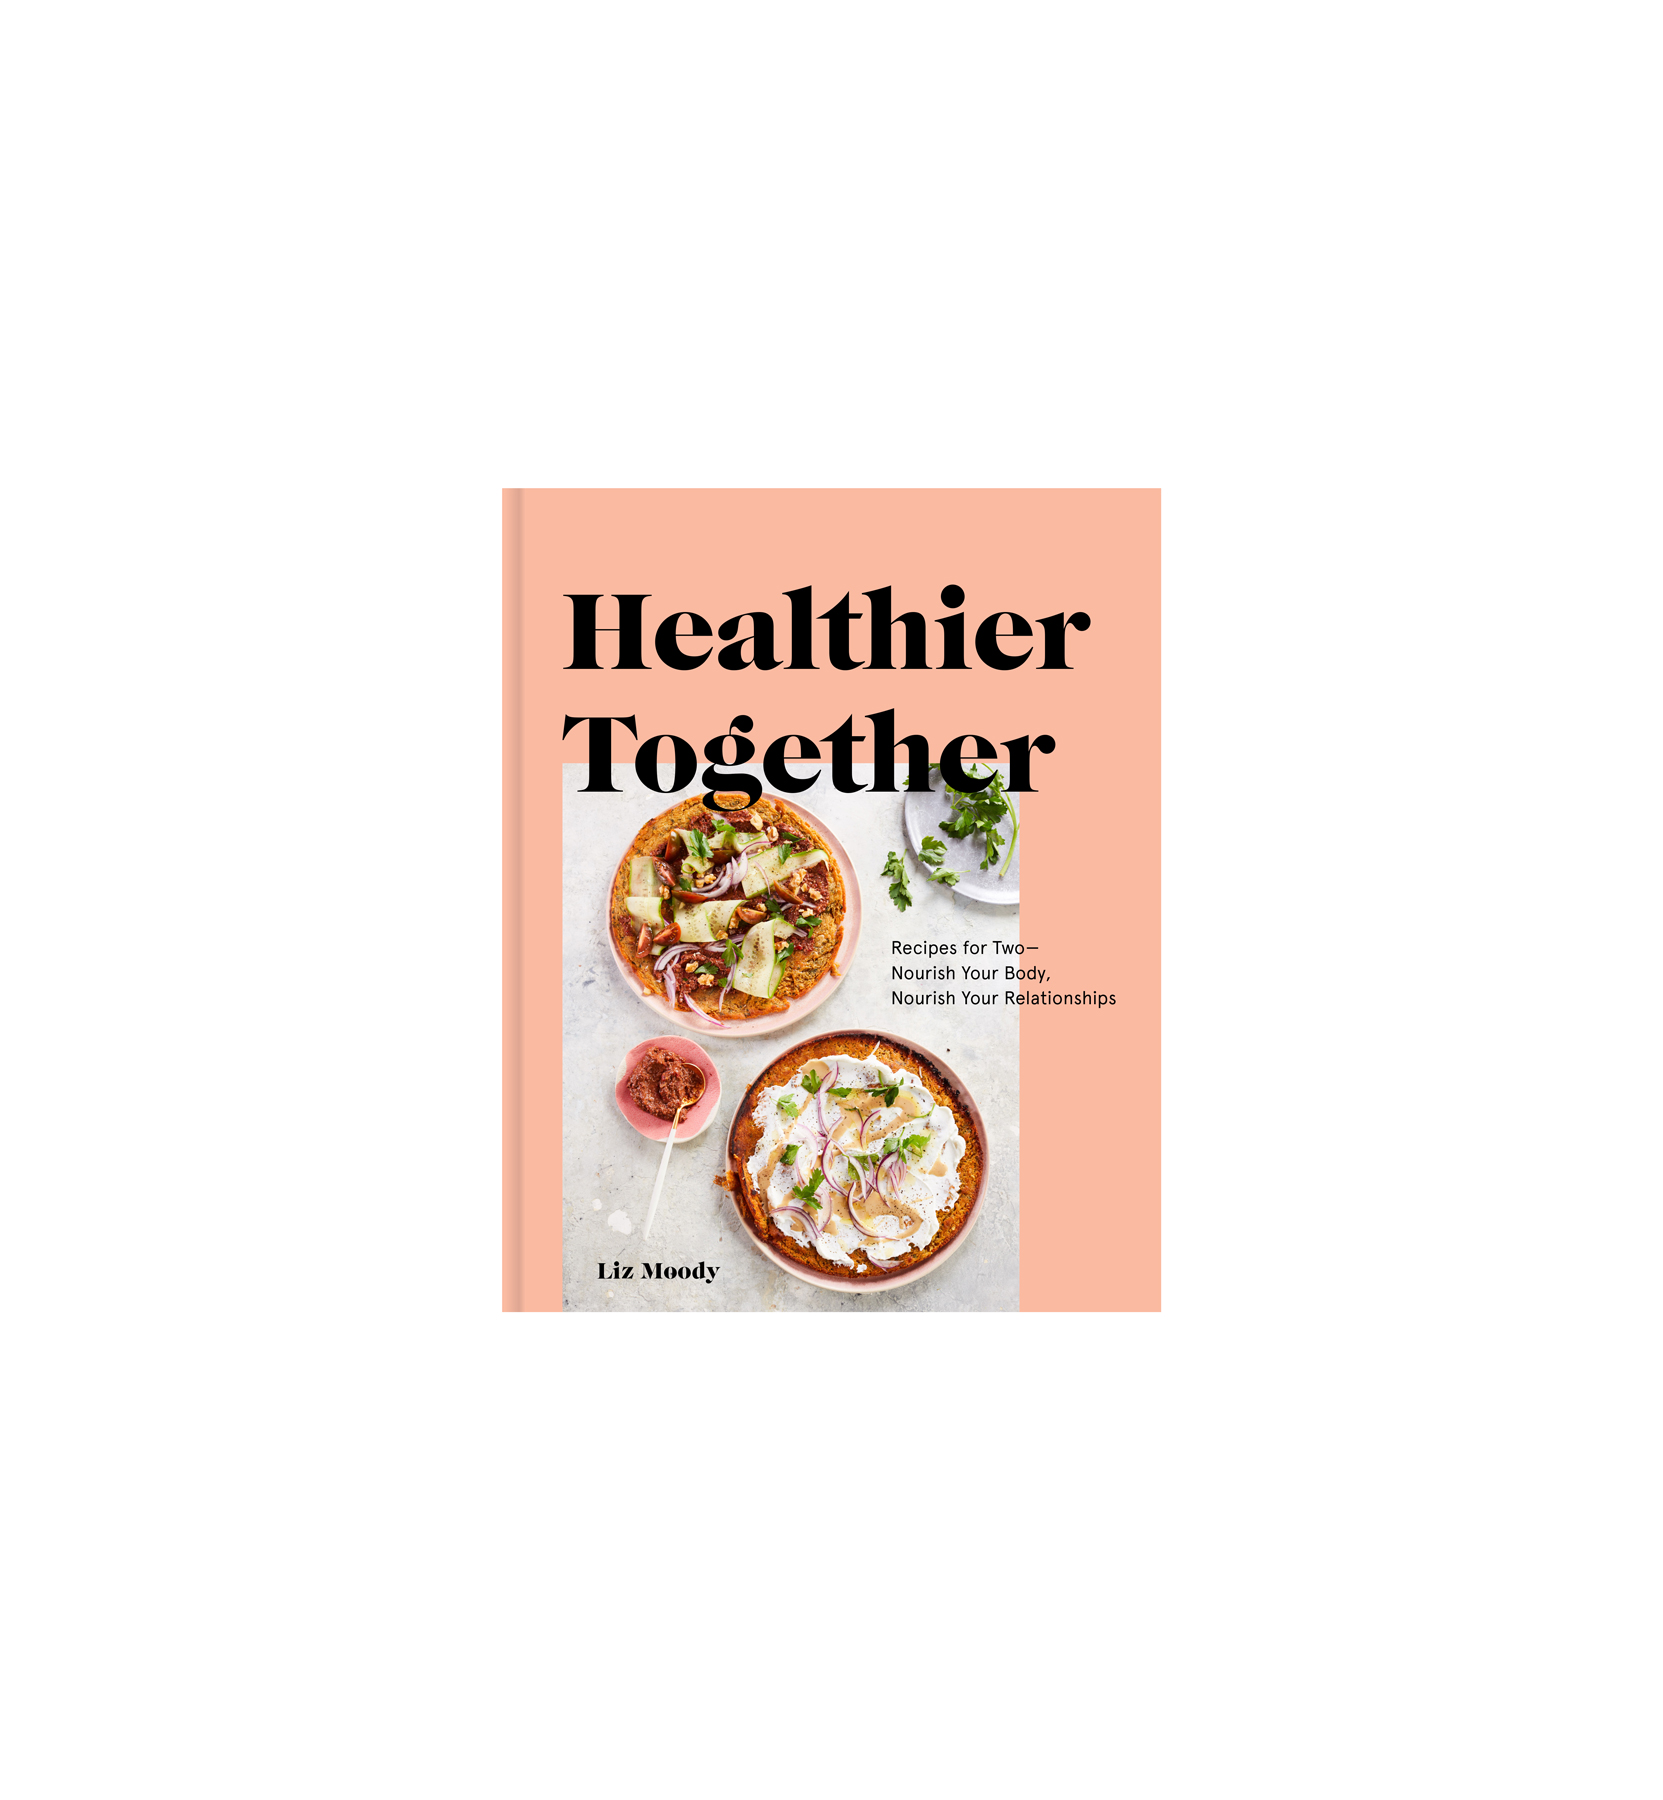 Mother's Day Gifts: Healthier Together cookbook